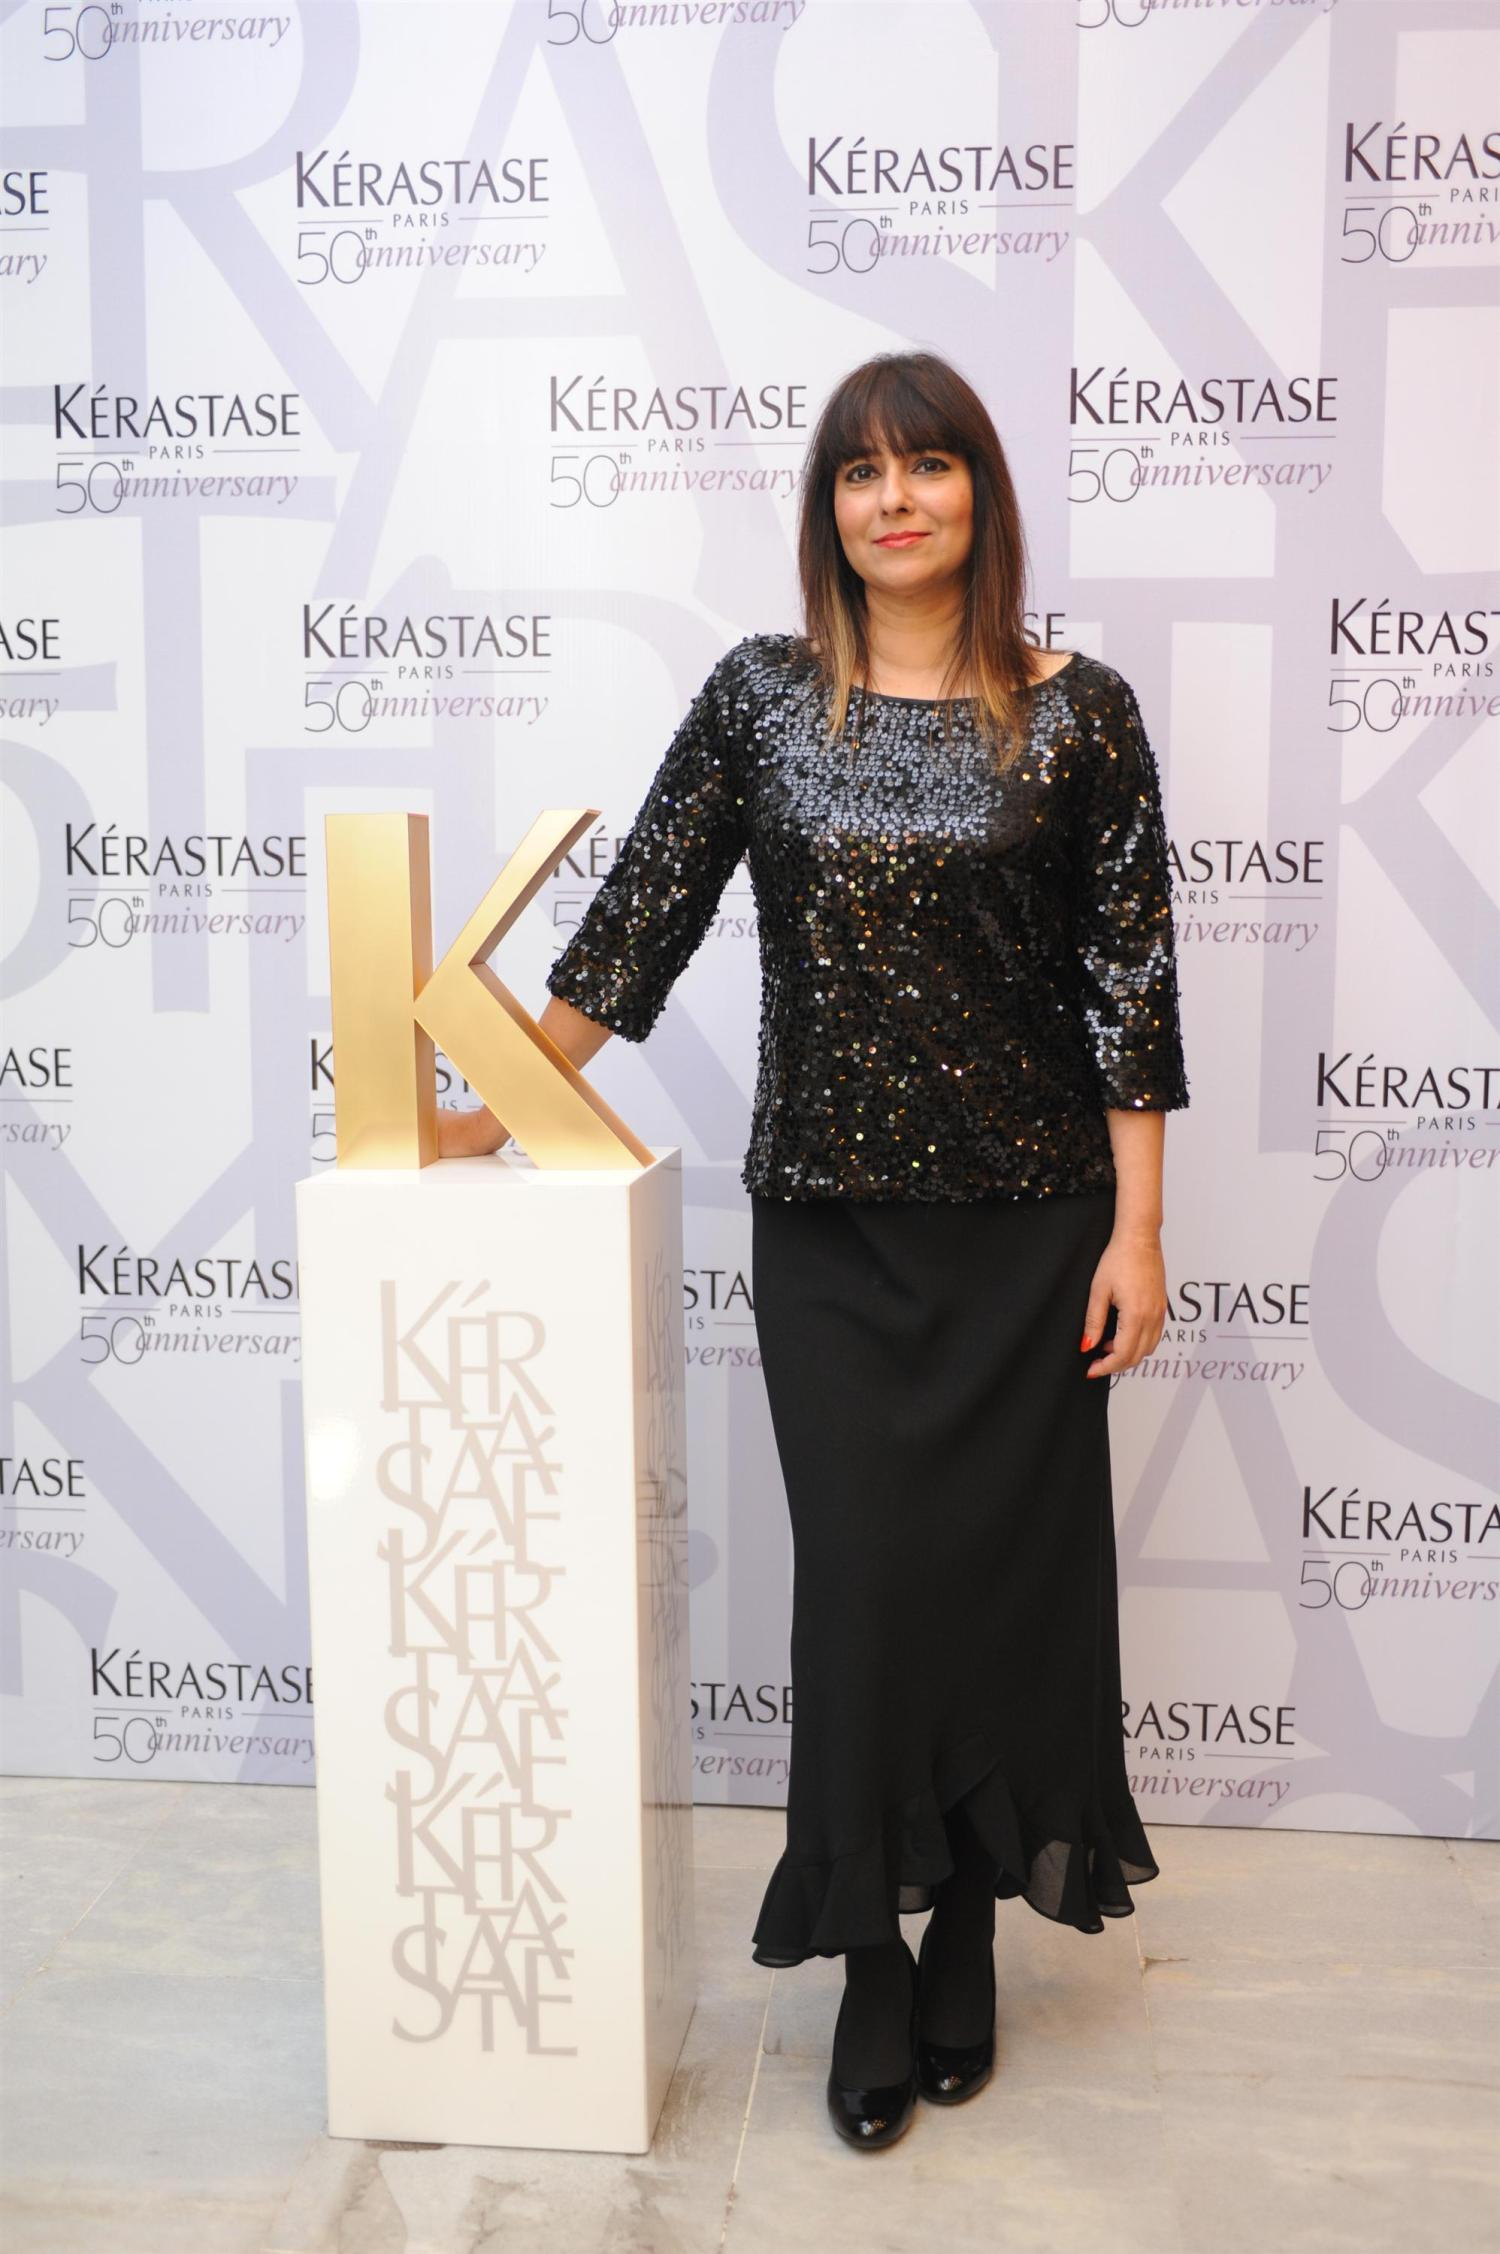 Smira Bakshi, GM Kerastase India